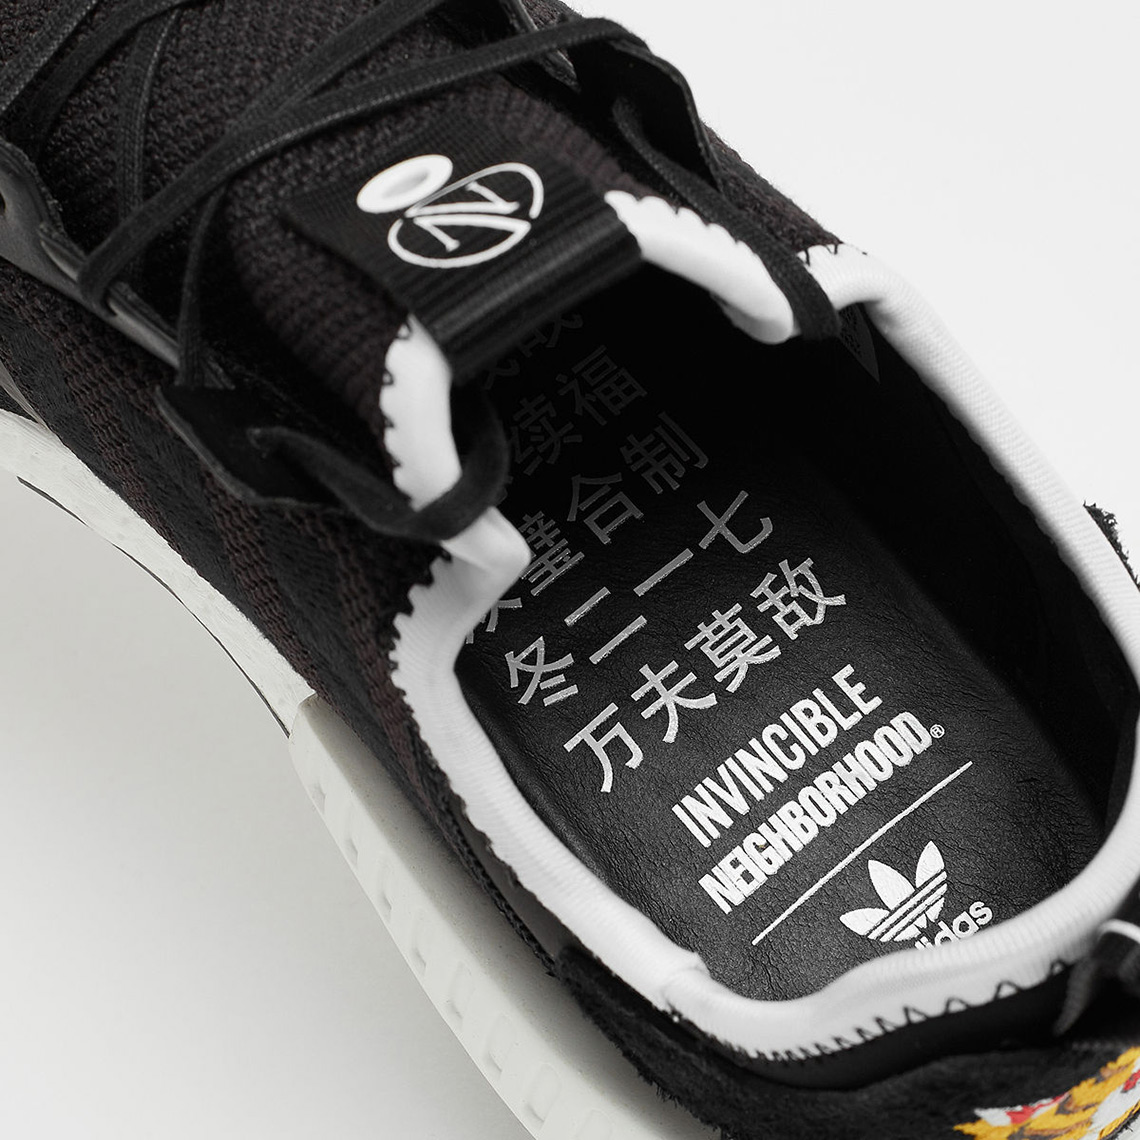 5aad4ba3e206a Invincible x Neighborhood x adidas NMD R1 Release Info